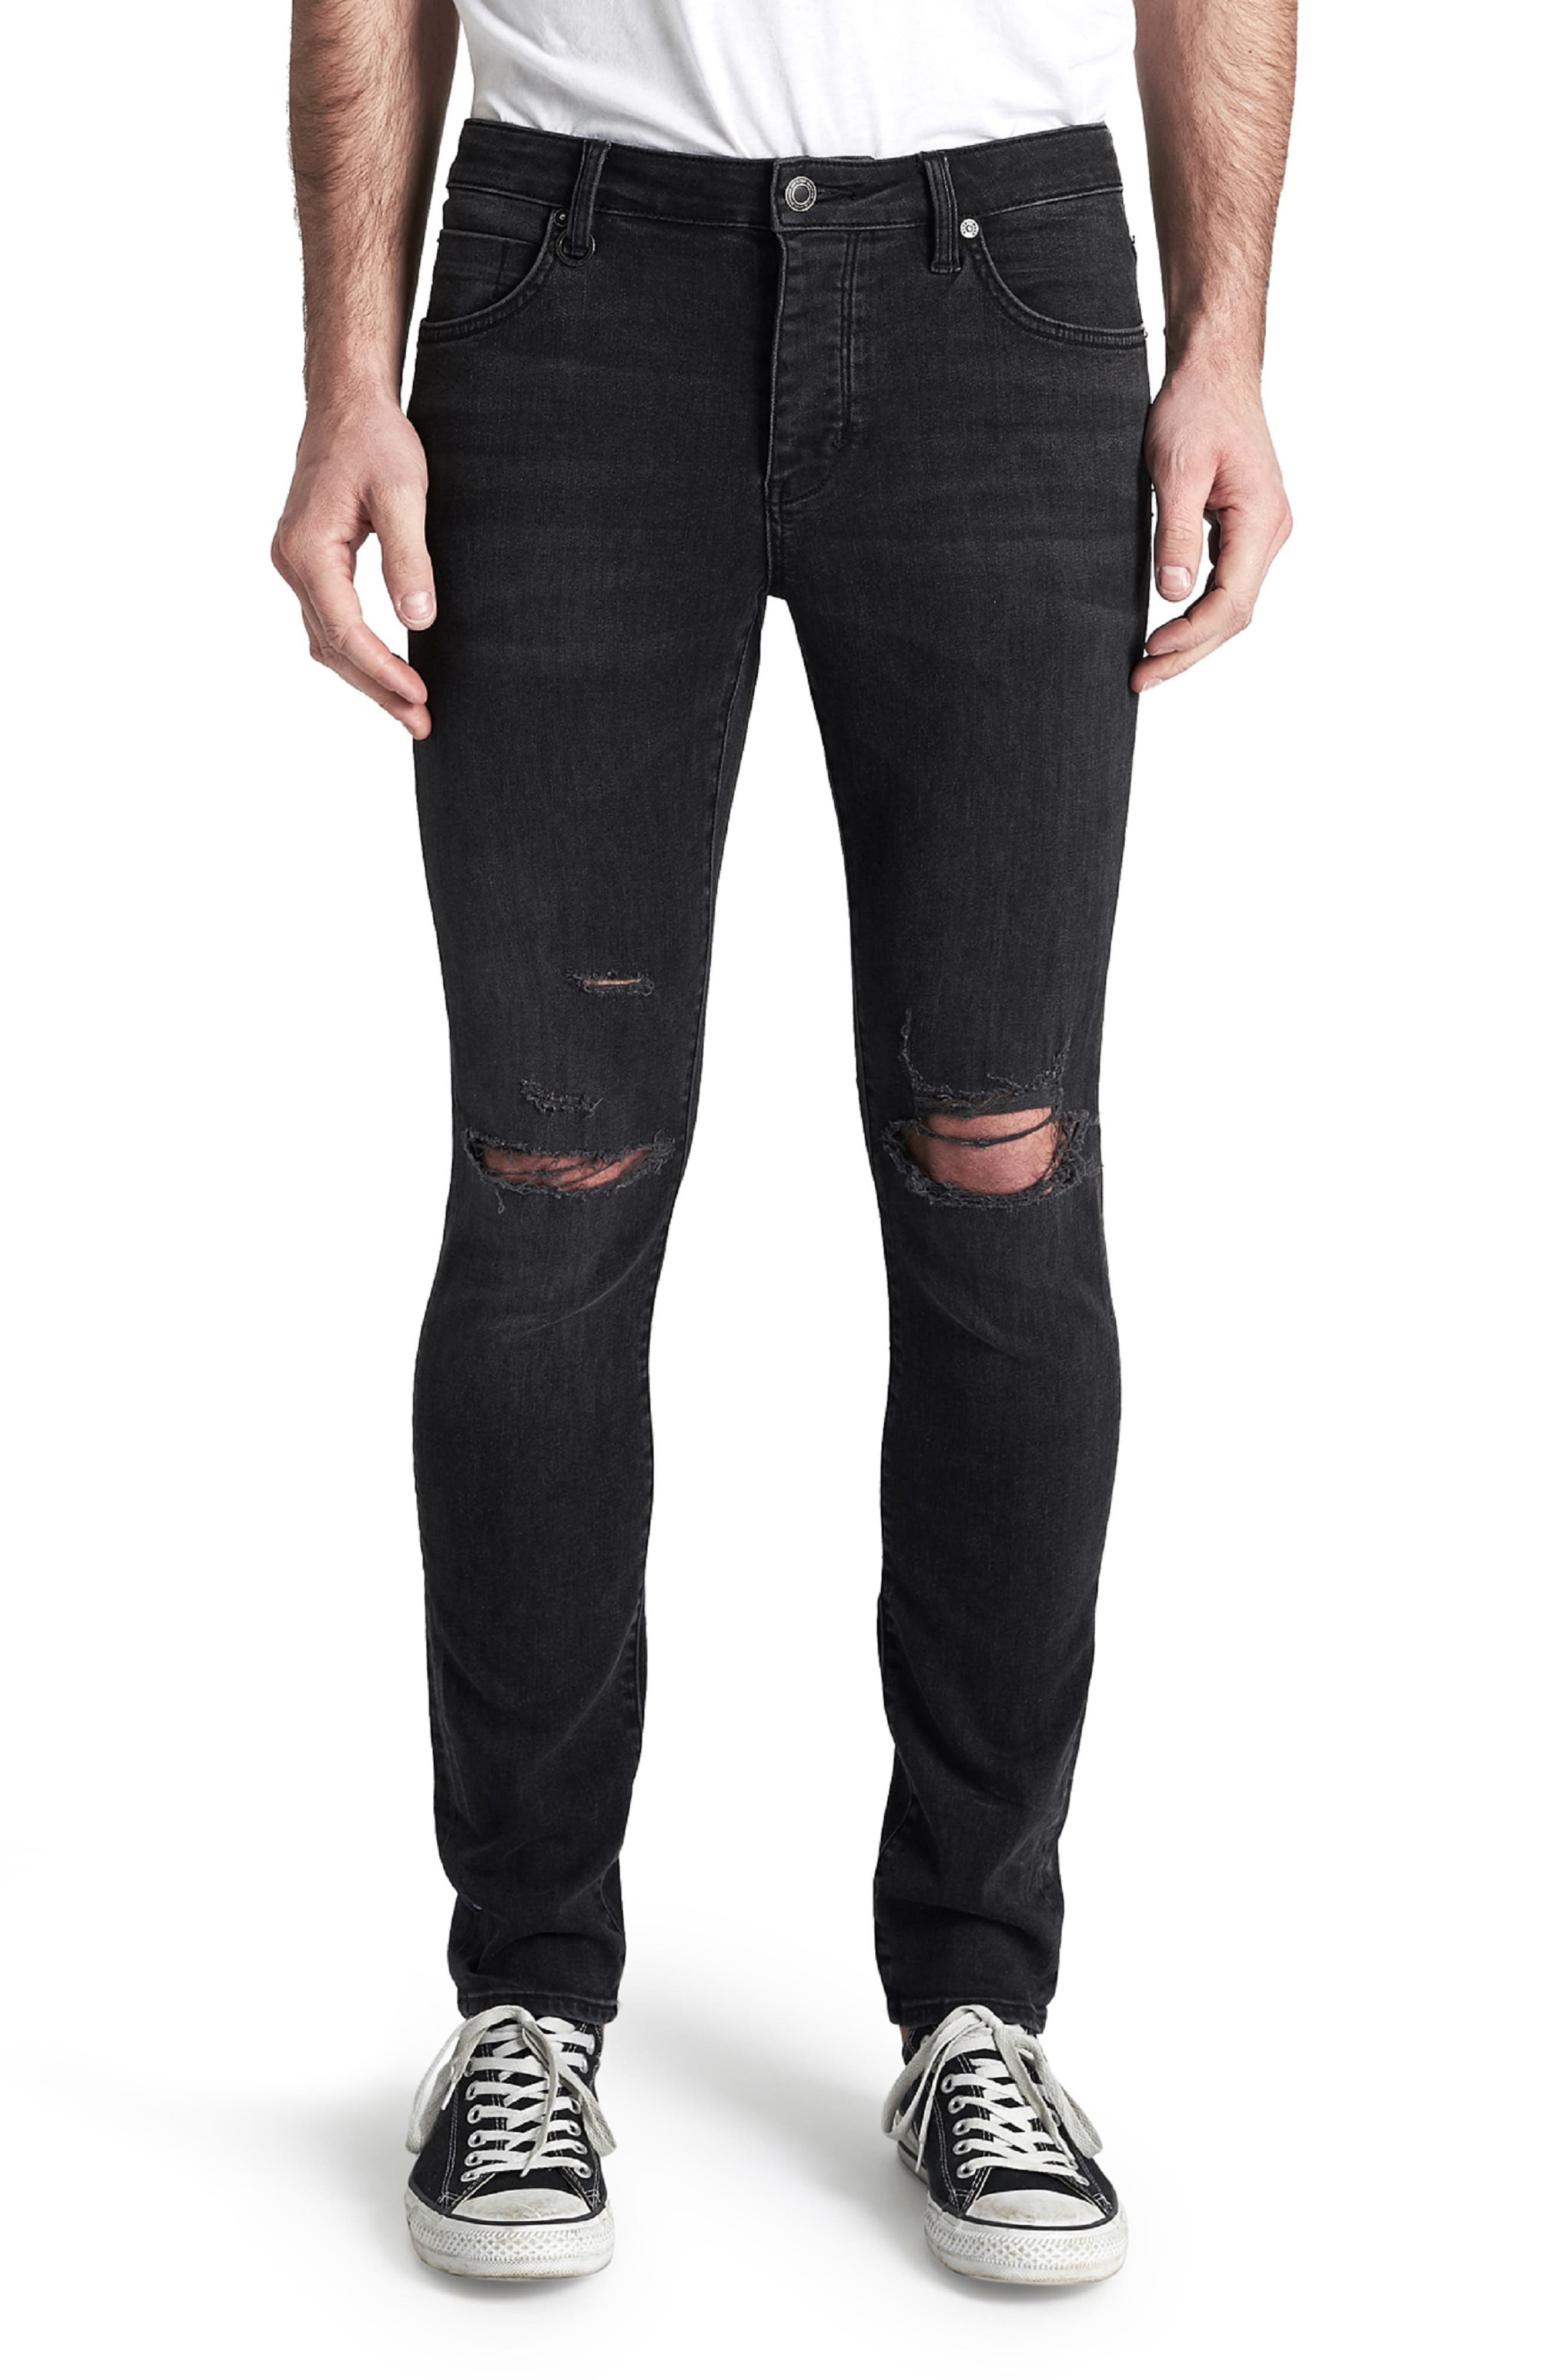 NEUW Iggy Skinny Fit Jeans in Wolfgang